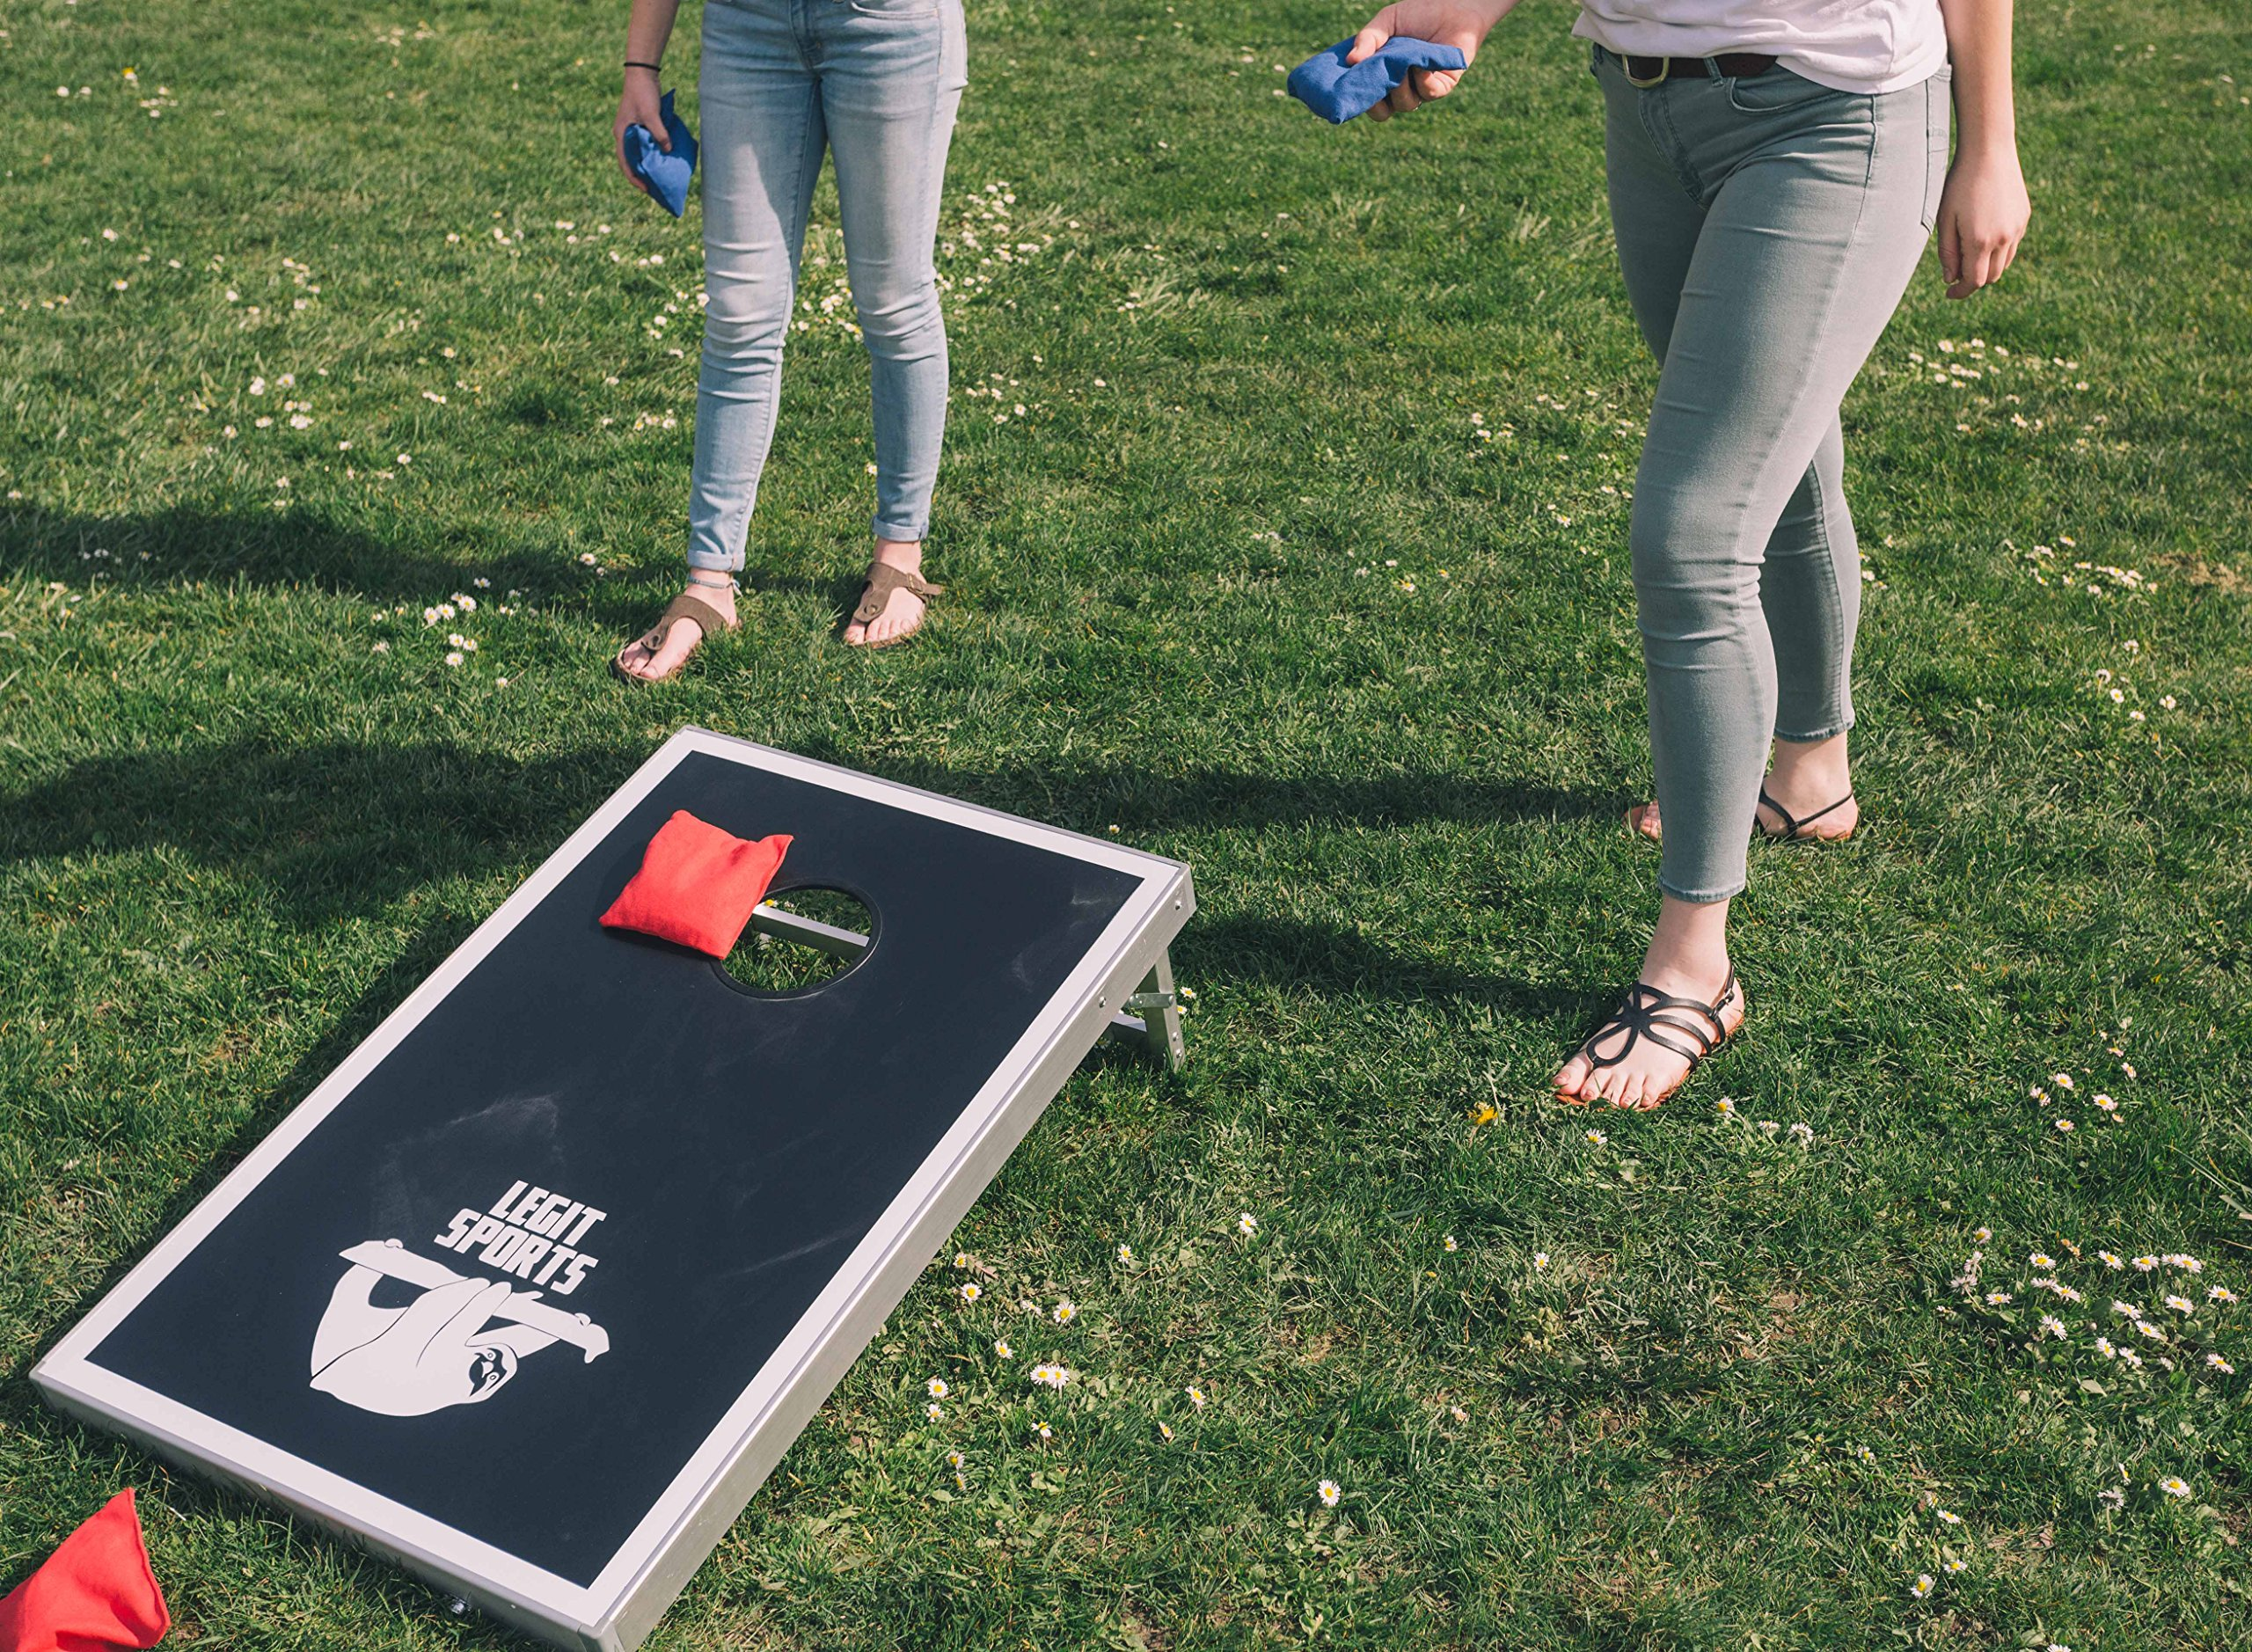 Cornhole Boards with Aluminum Frame by Legit Sports | Bean Bag Toss Corn Hole Outdoor Game with Weighted Bean Bags | Lightweight and Durable Materials | Great for Travel, Camping, Parties by Legit Camping (Image #4)